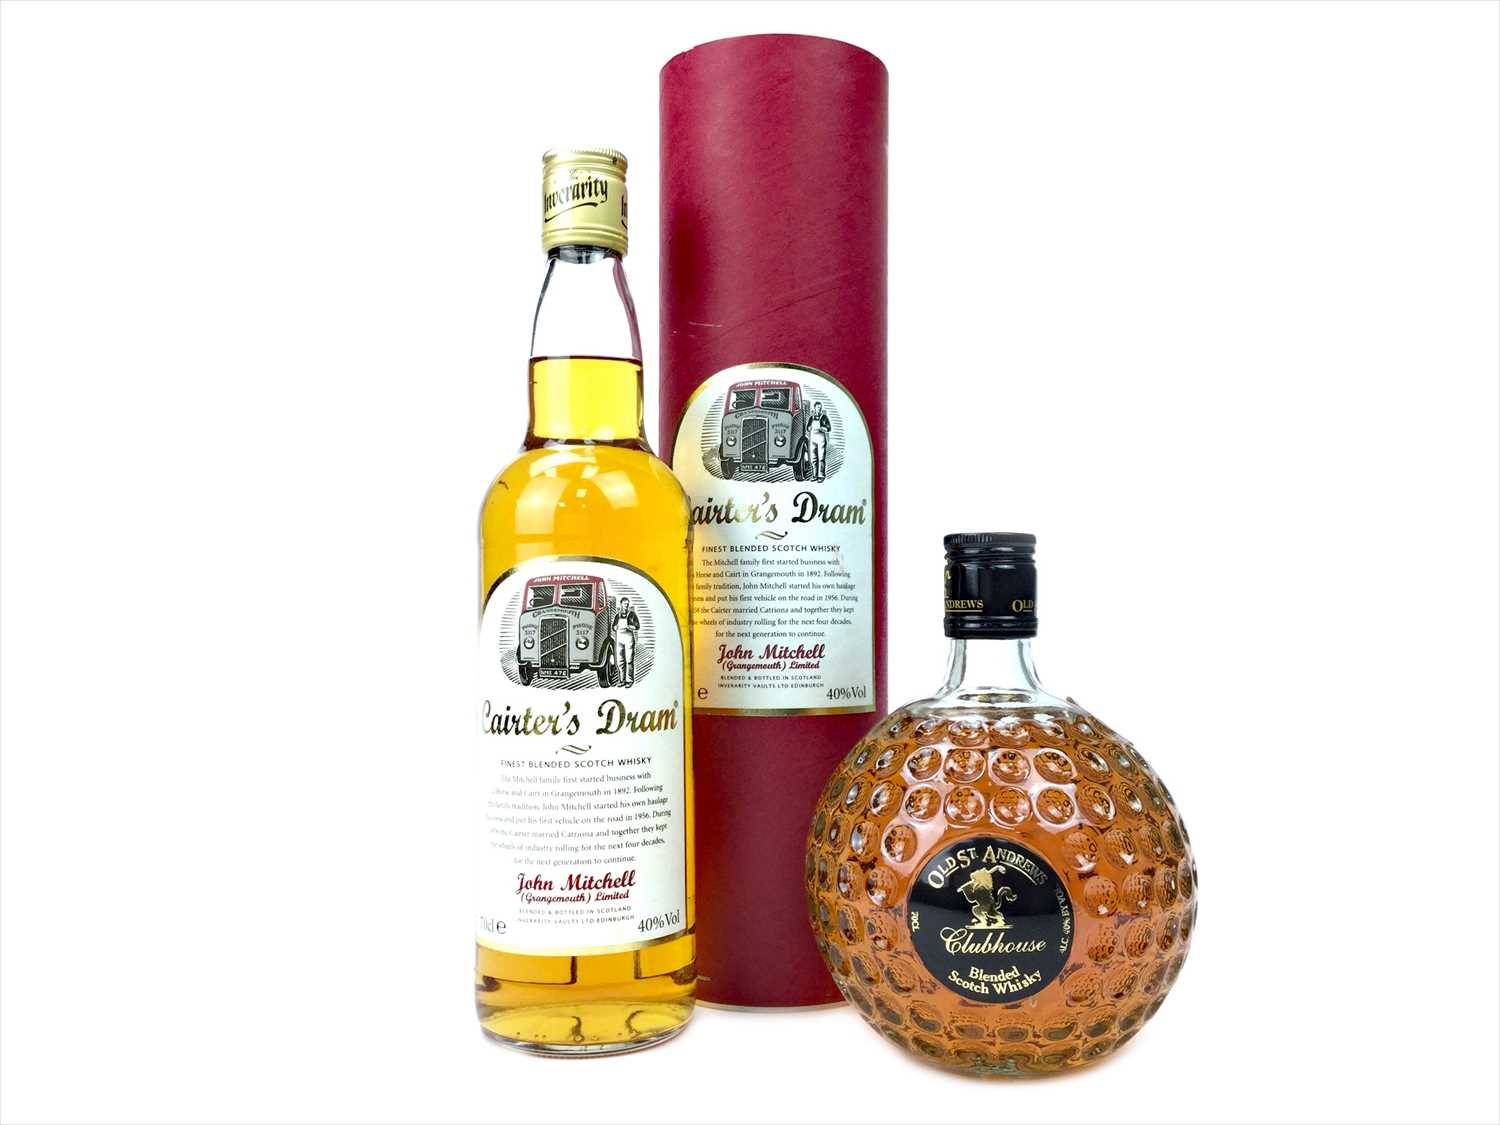 Lot 422-OLD ST ANDREWS AND CAIRTER'S DRAM